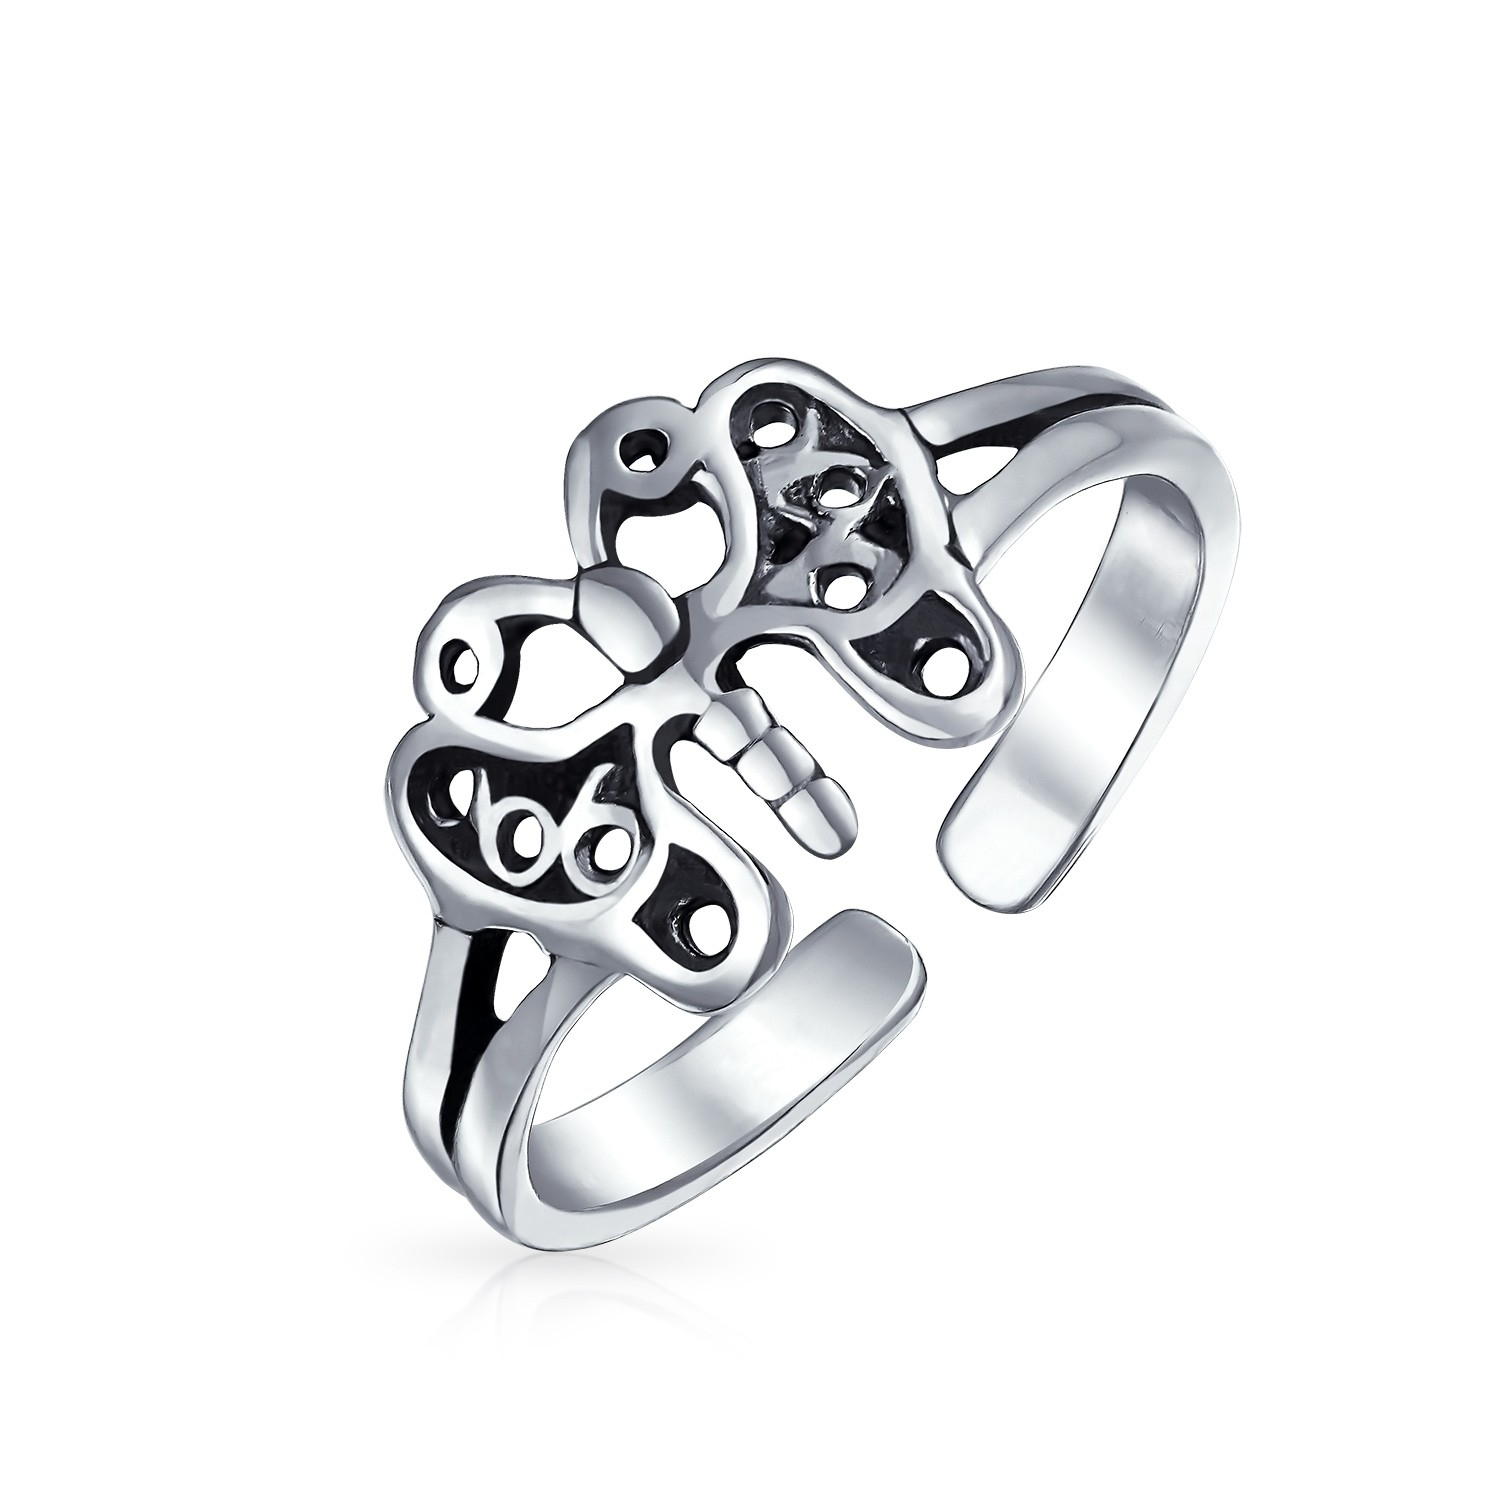 Filigree Butterfly Toe Ring Adjustable Sterling Silver Midi Rings Throughout Most Current Platinum Toe Rings (Gallery 4 of 15)